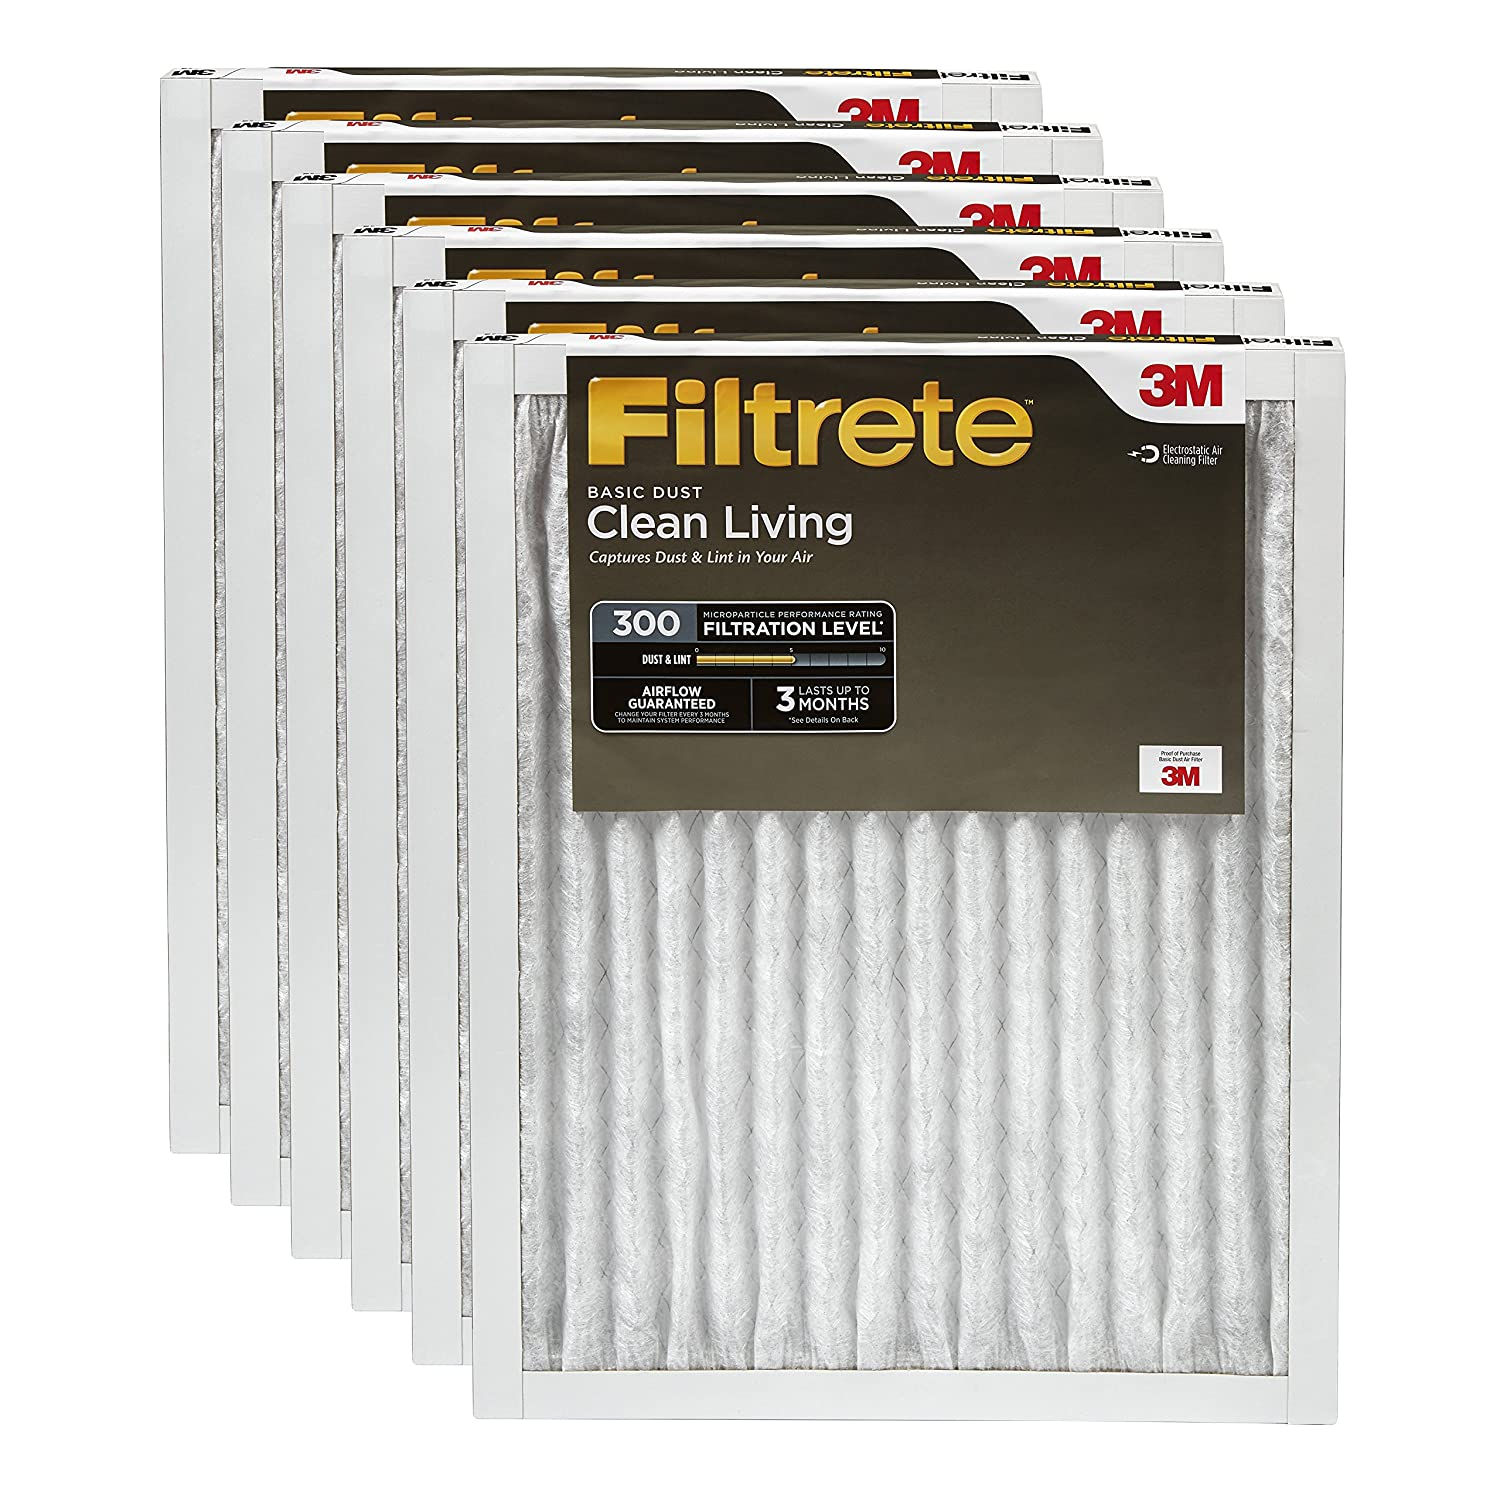 Furnace Filters Amazon